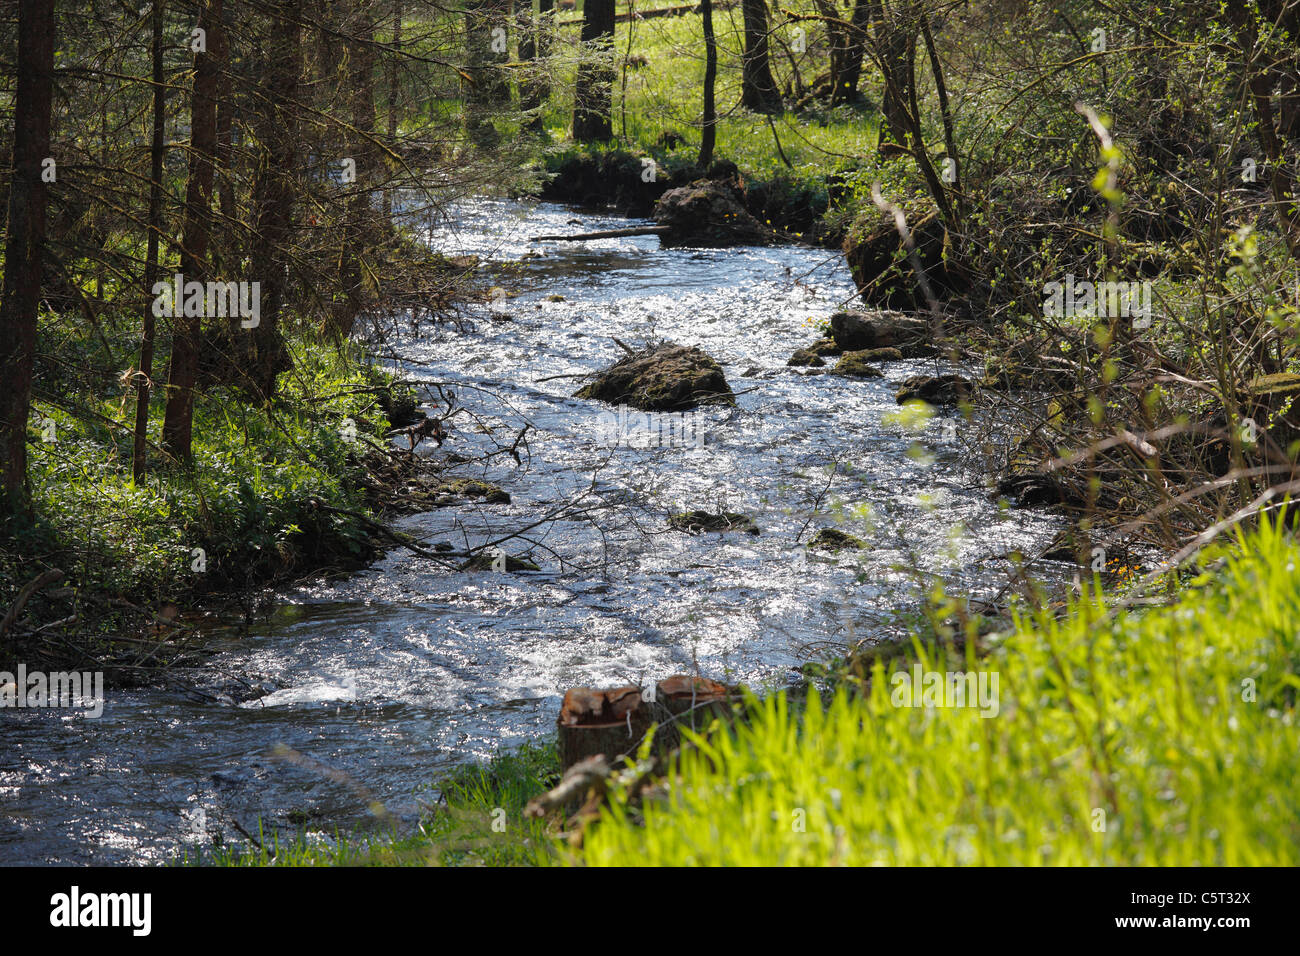 Germany, Bavaria, Franconia, Upper Franconia, Franconian Switzerland, Pottenstein, View of stream in Puettlach valley - Stock Image